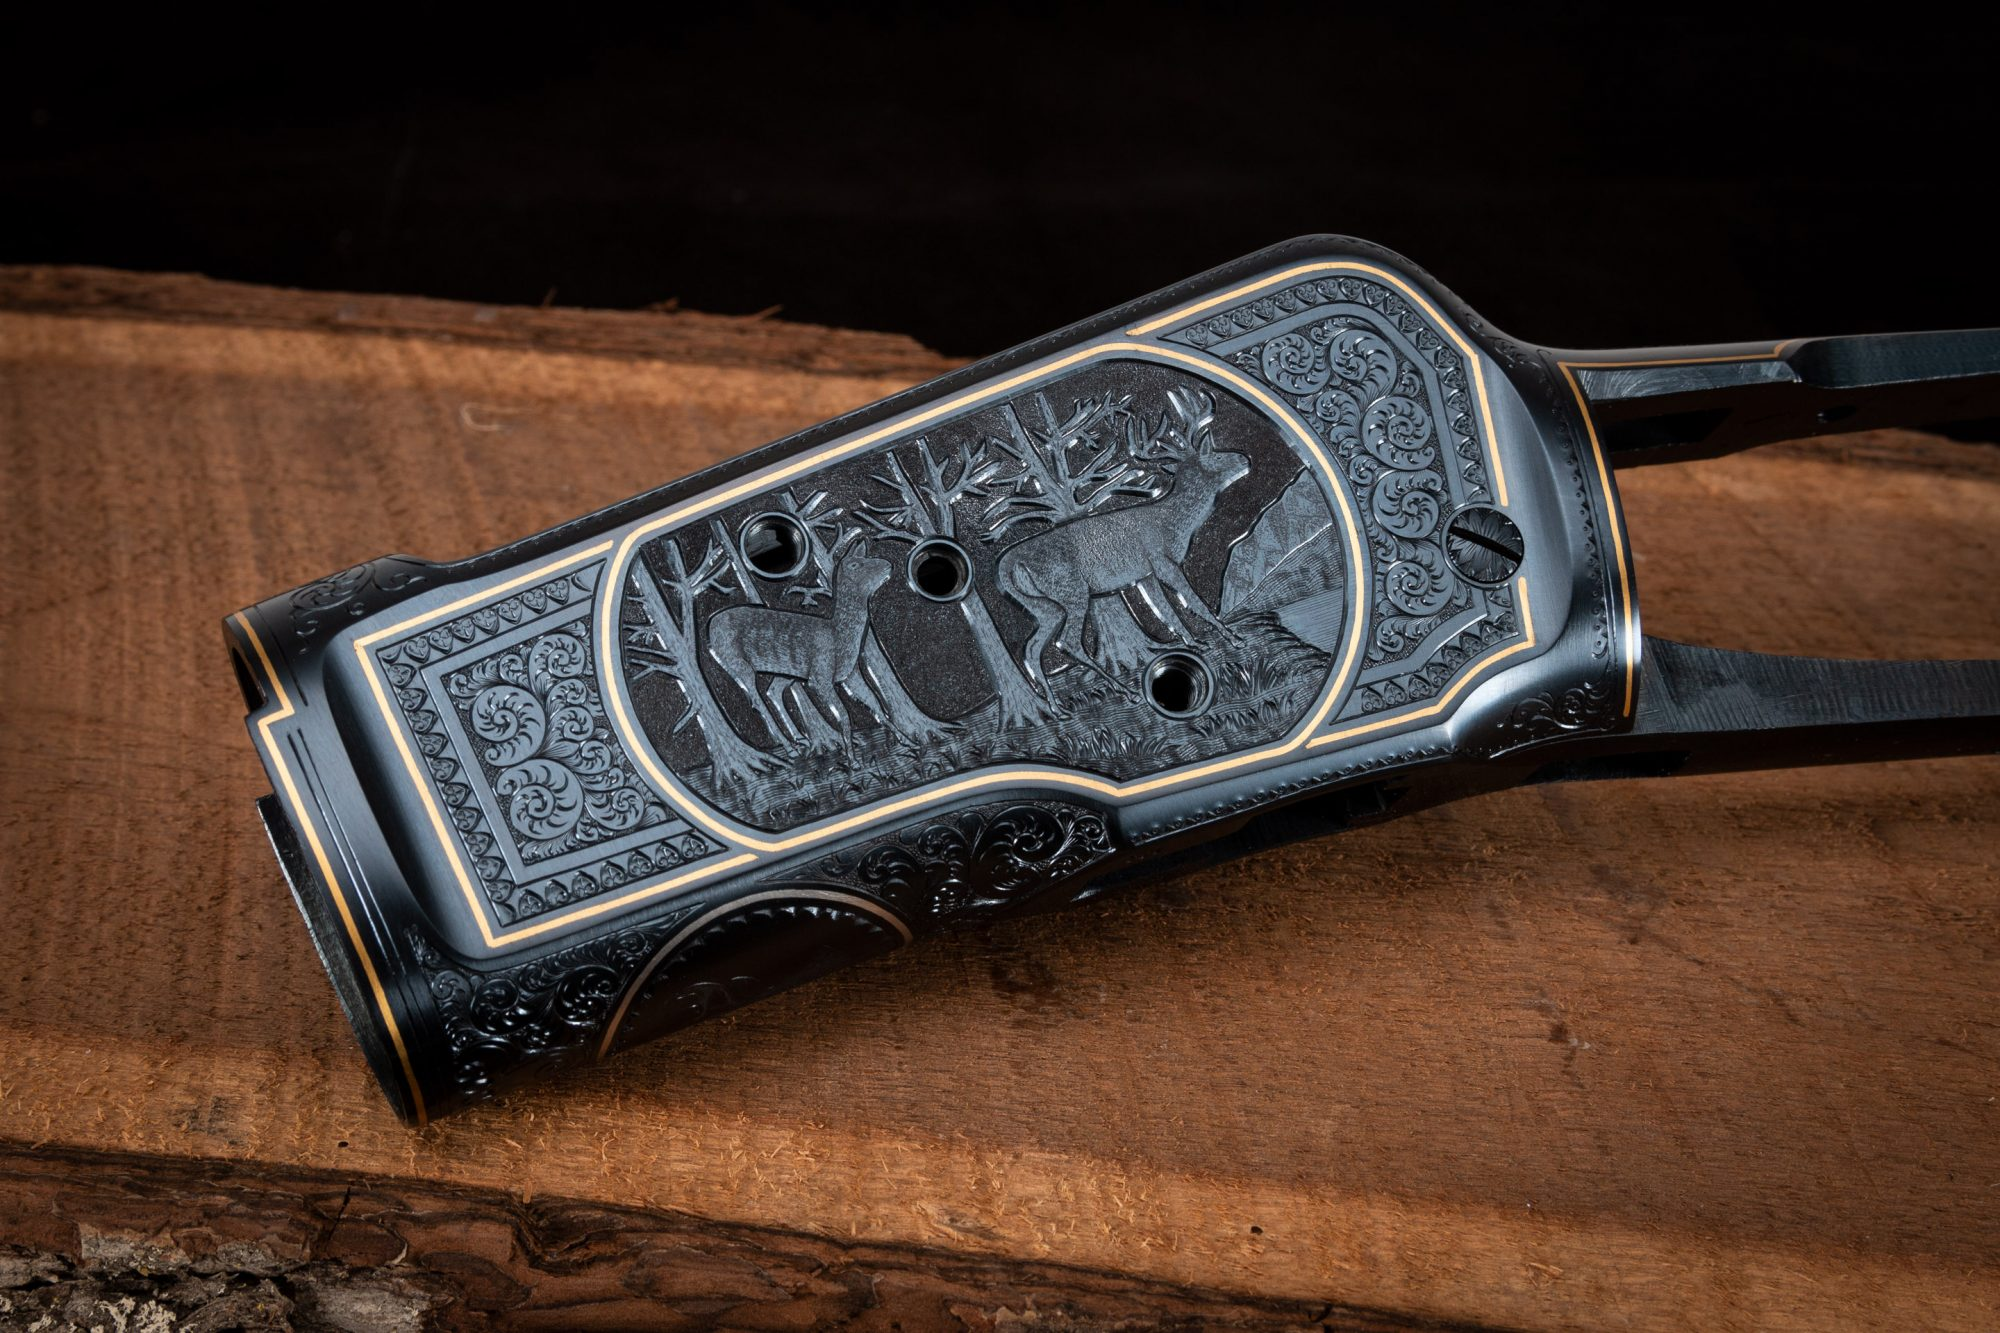 Photo of engraved and charcoal blued receiver on a fully restored Winchester Model 1892 from 1914, performed by Turnbull Restoration in Bloomfield, NY